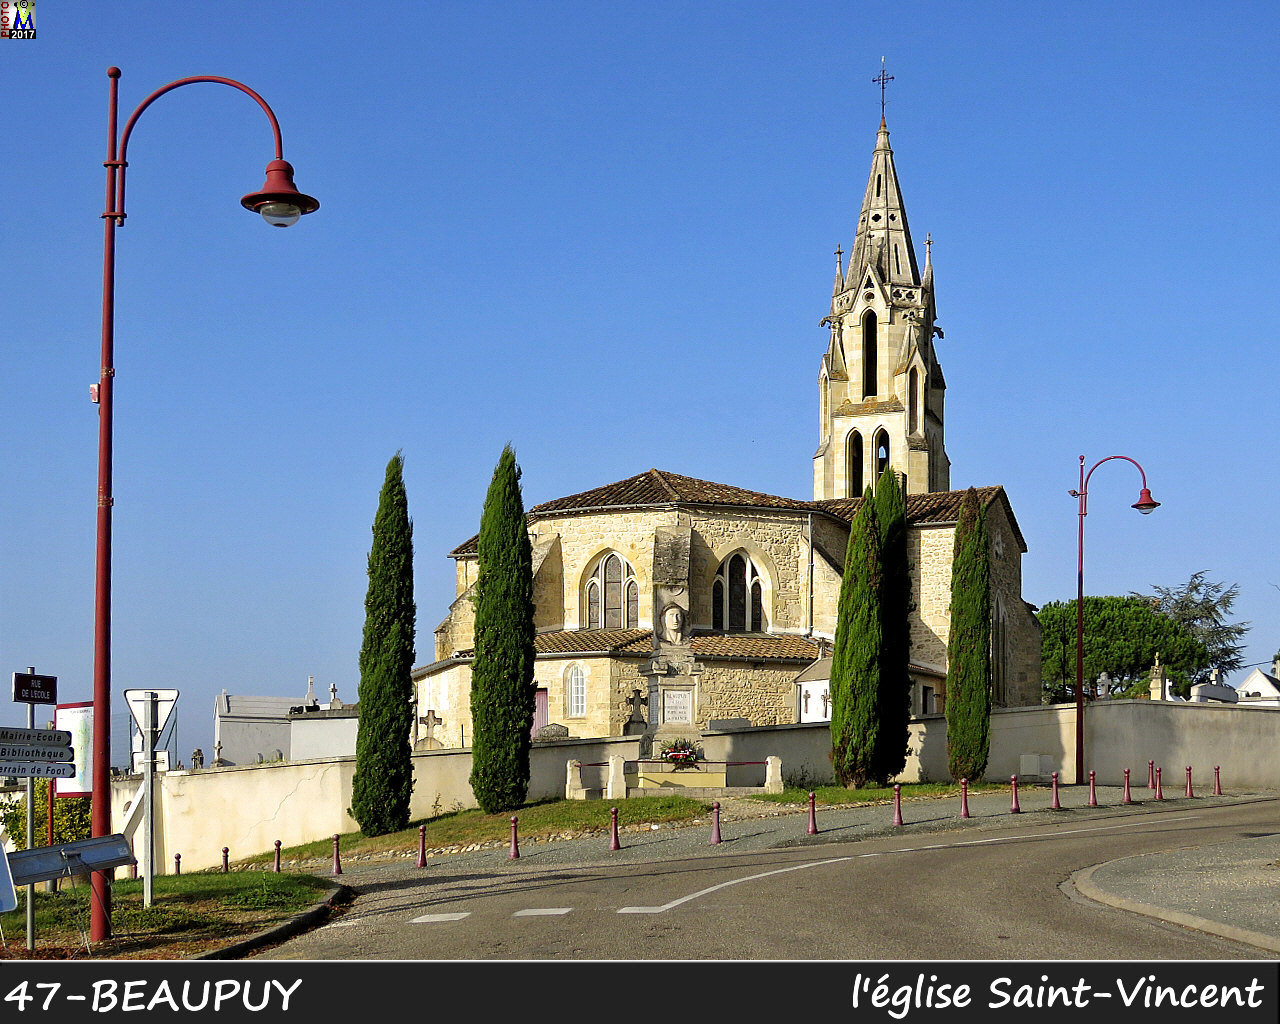 47BEAUPUY_eglise_1000.jpg